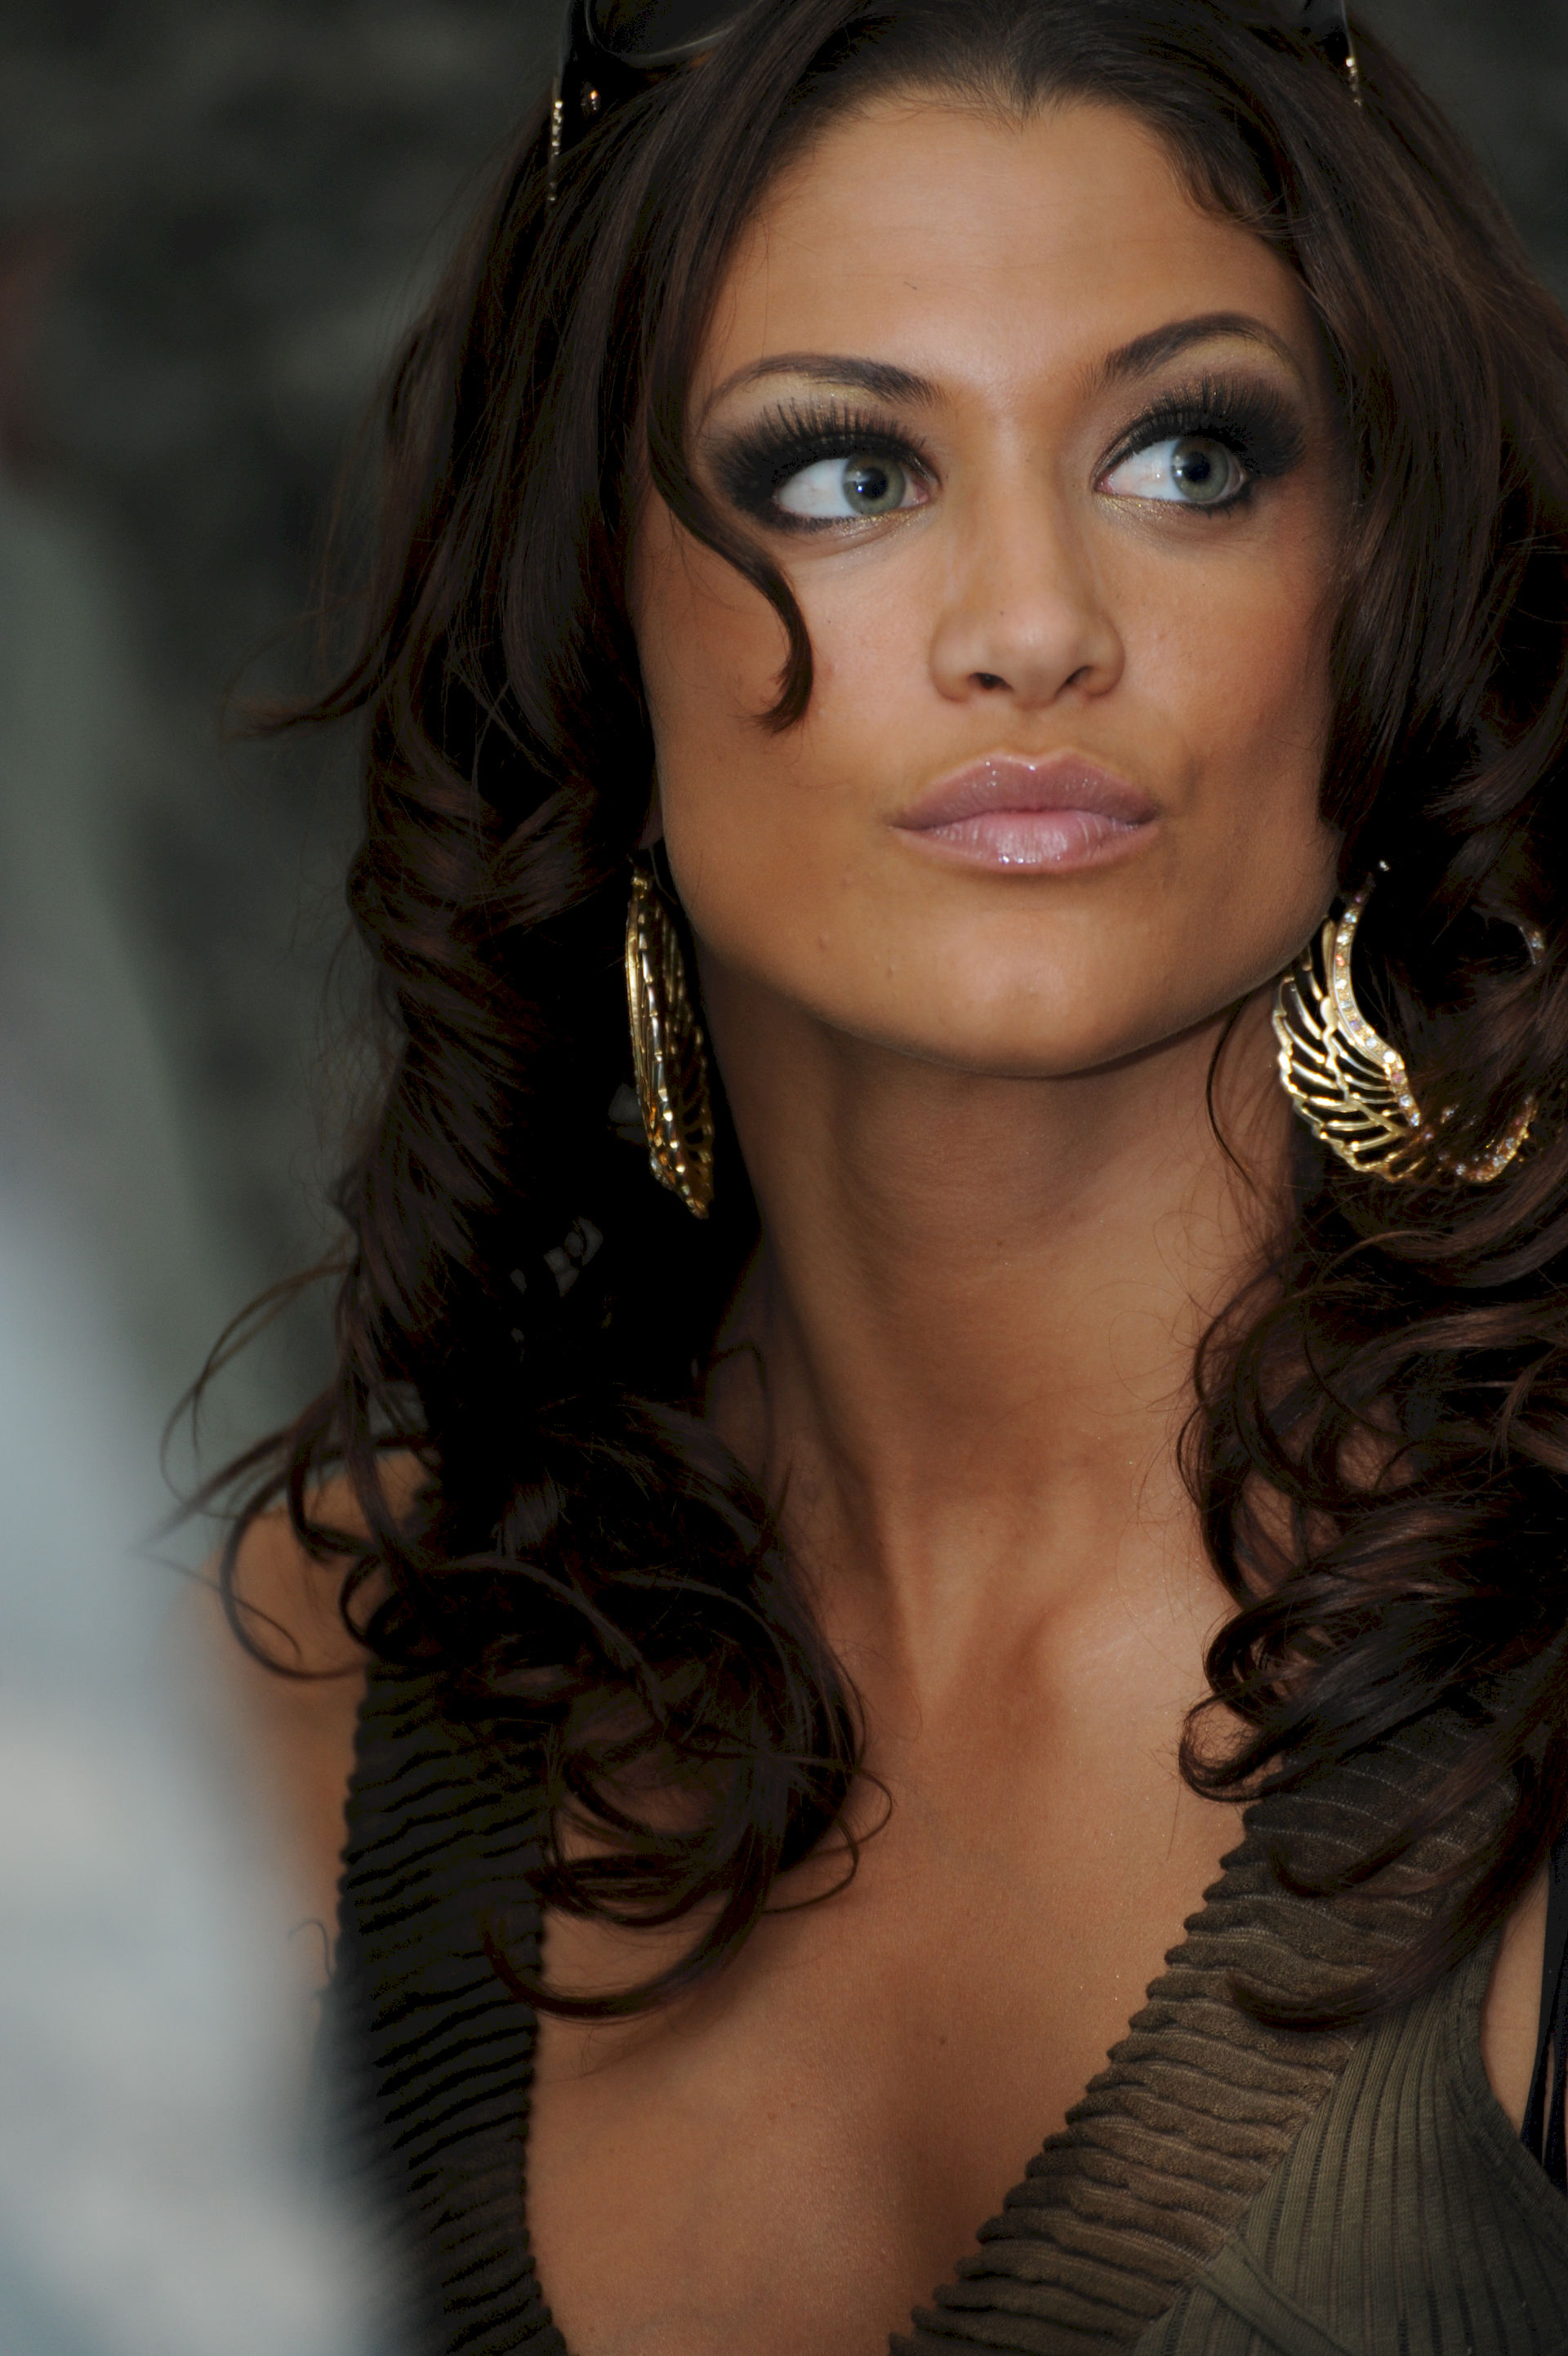 Photo of Eve Torres: American professional wrestler, actress, dancer, and model